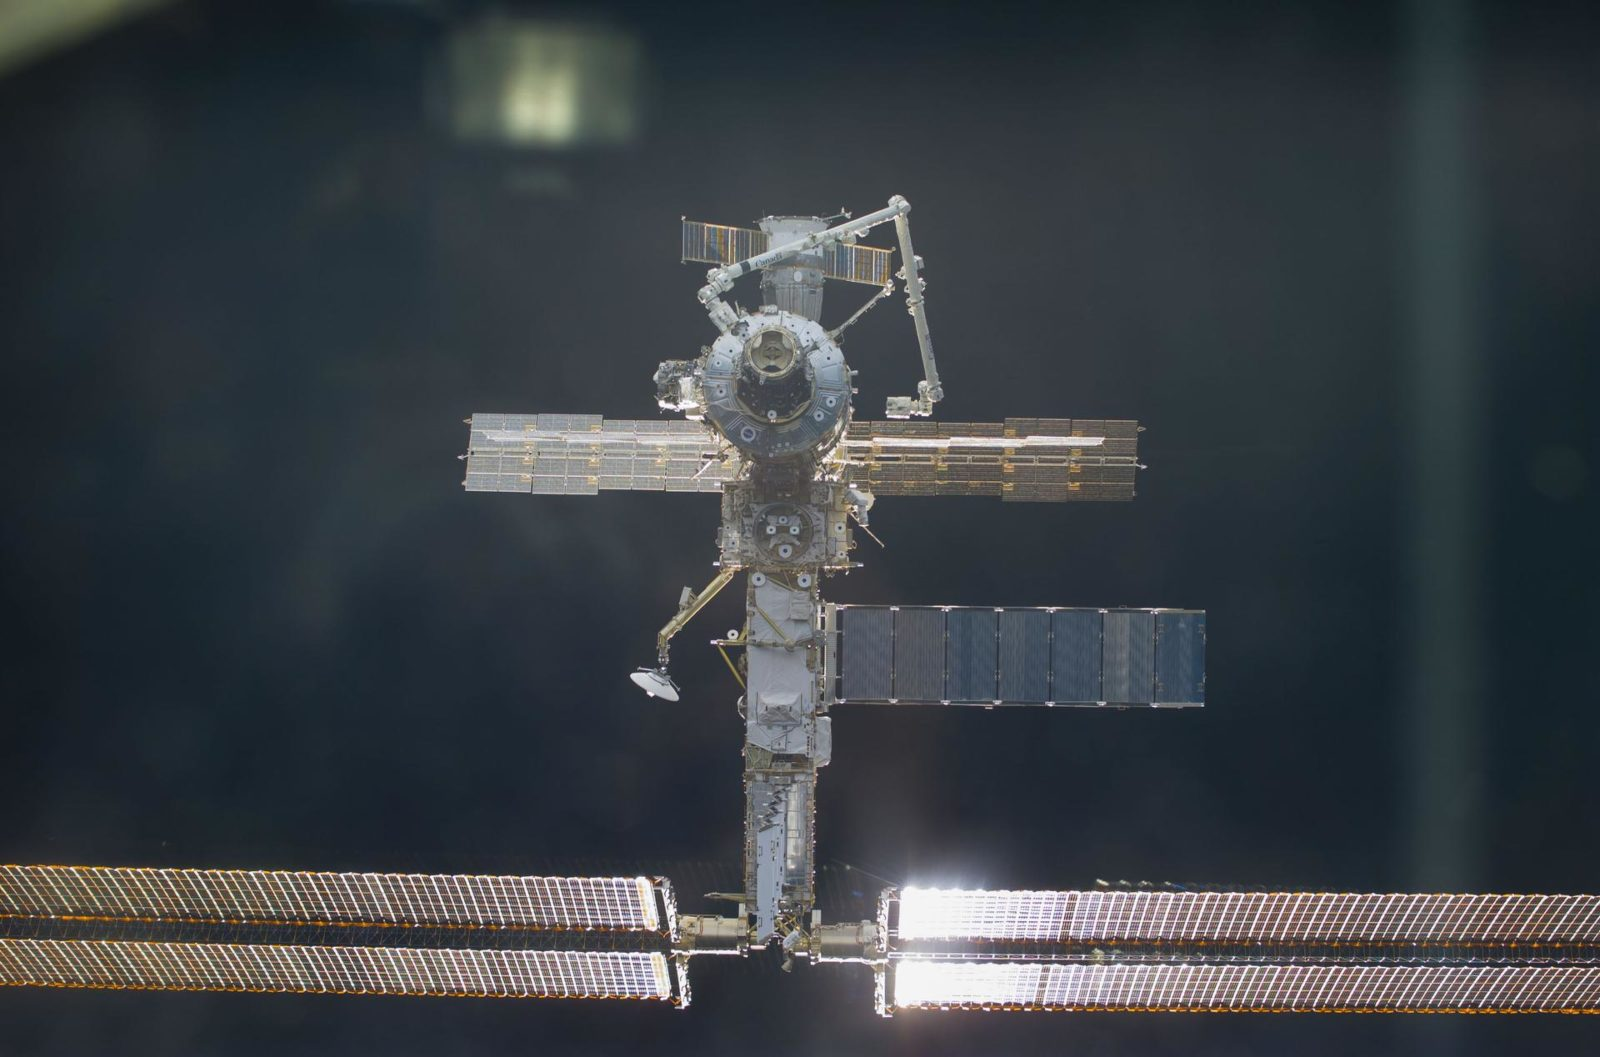 ISS during approach by STS-104 orbiter Atlantis